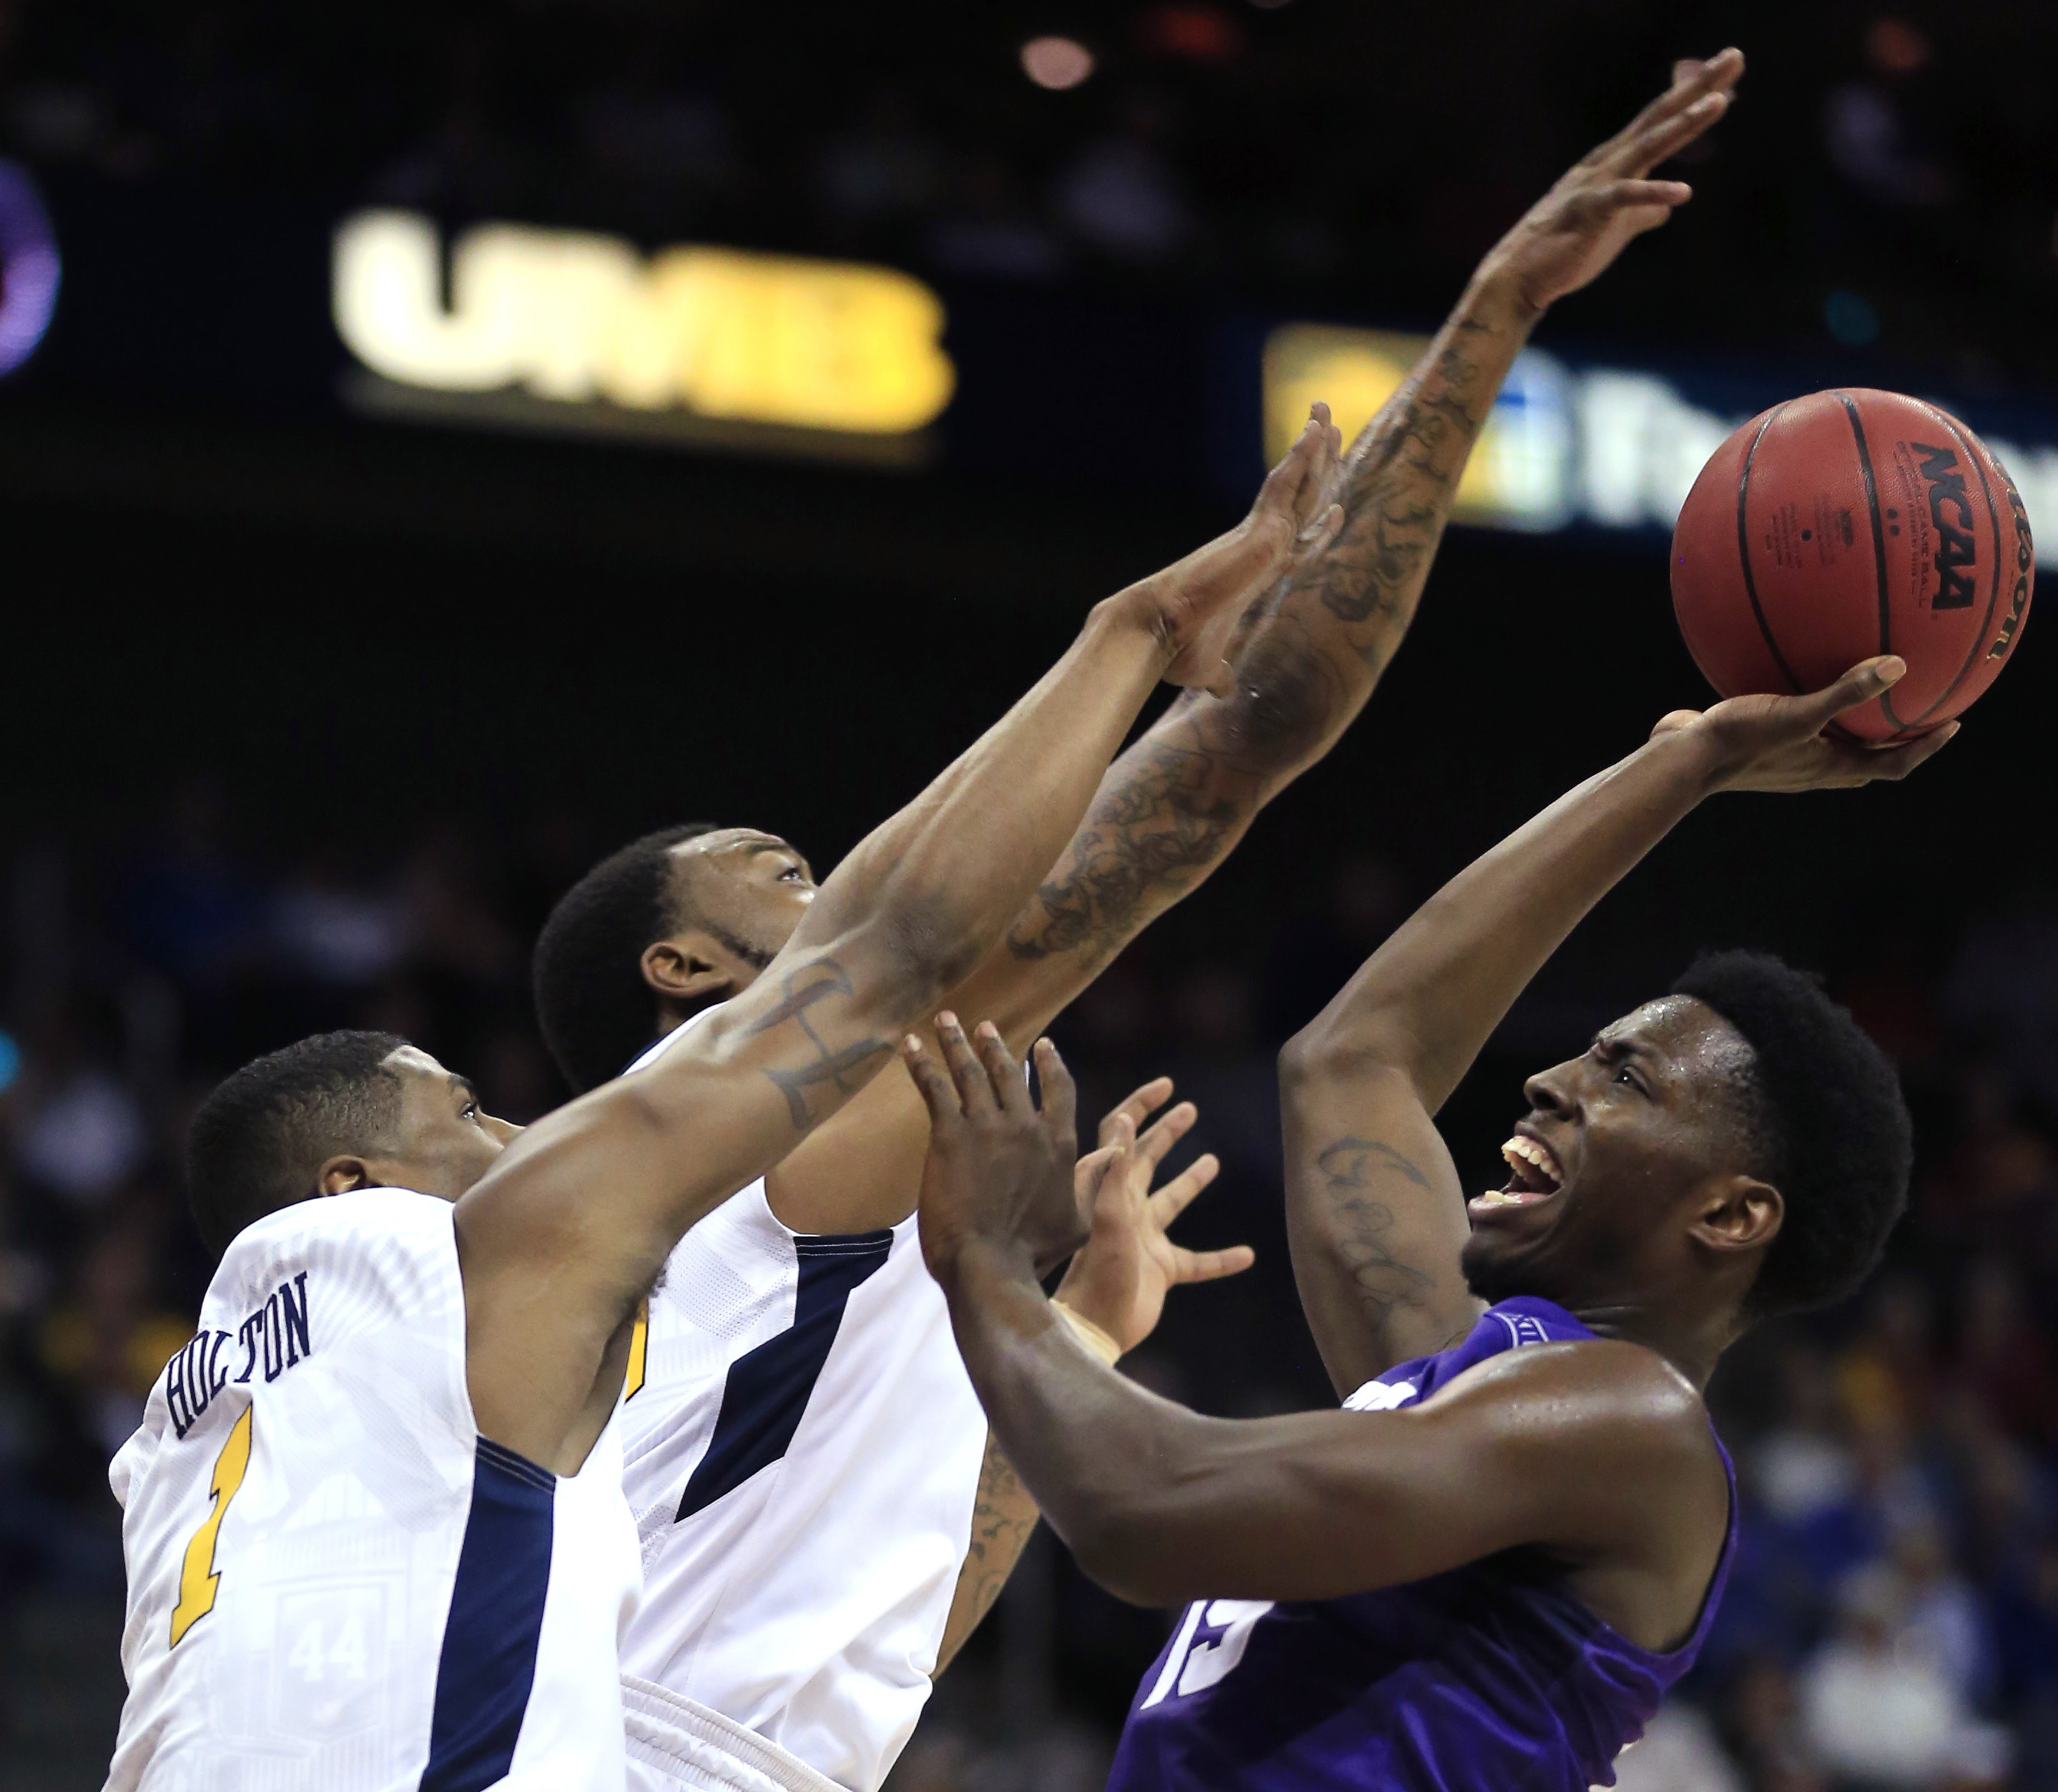 TCU forward JD Miller (15) shoots over West Virginia forwards Jonathan Holton (1) and Elijah Macon, middle, during the first half of an NCAA college basketball game in the quarterfinals of the Big 12 Conference men's tournament in Kansas City, Mo., Thursd